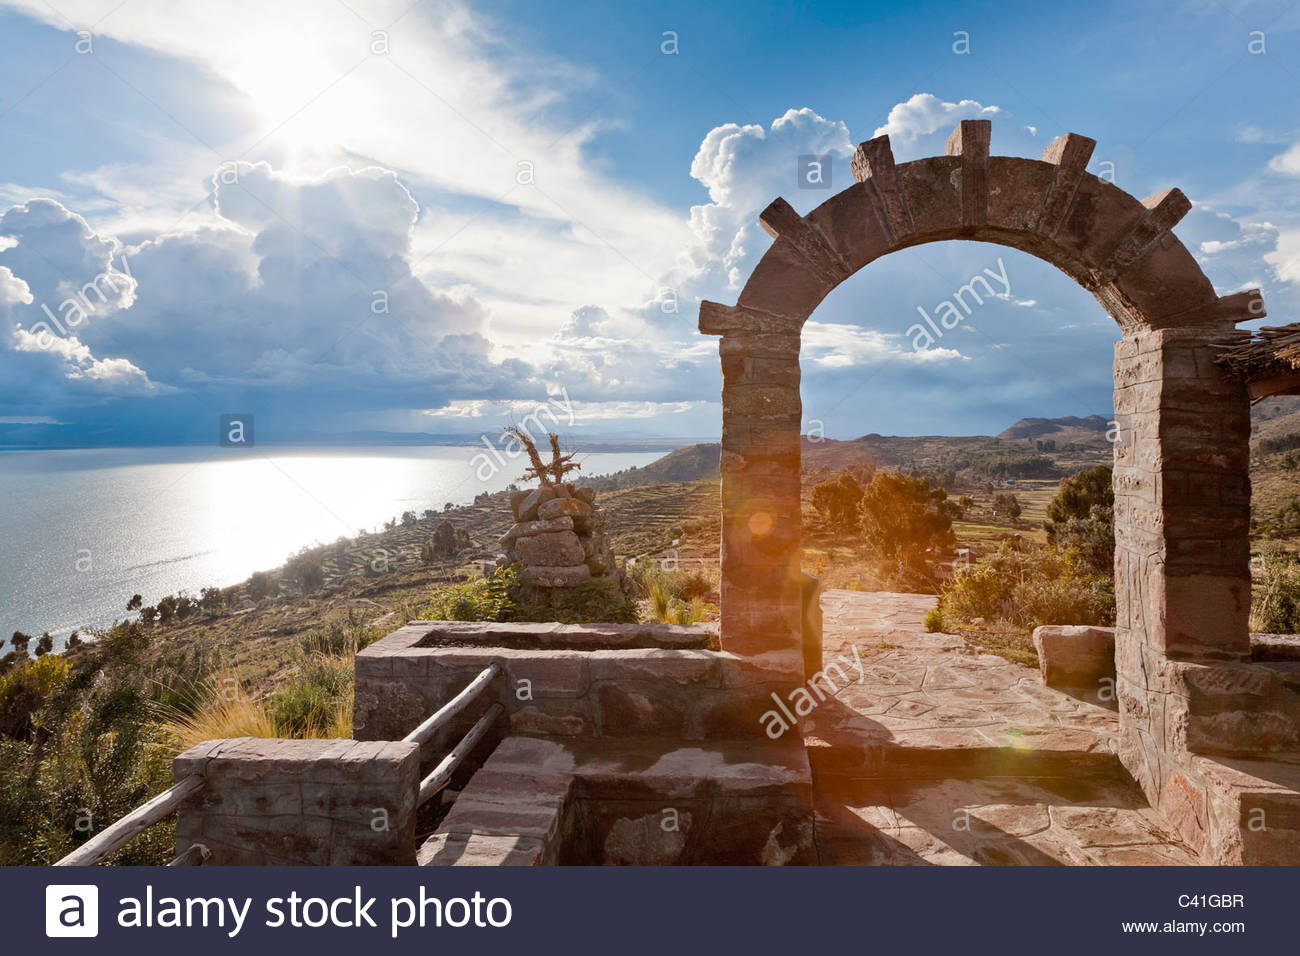 A stone archway with a dramatic sky as the sun sets. Lllachon, Capachica Peninsula, near Puno, Peru. - Stock Image